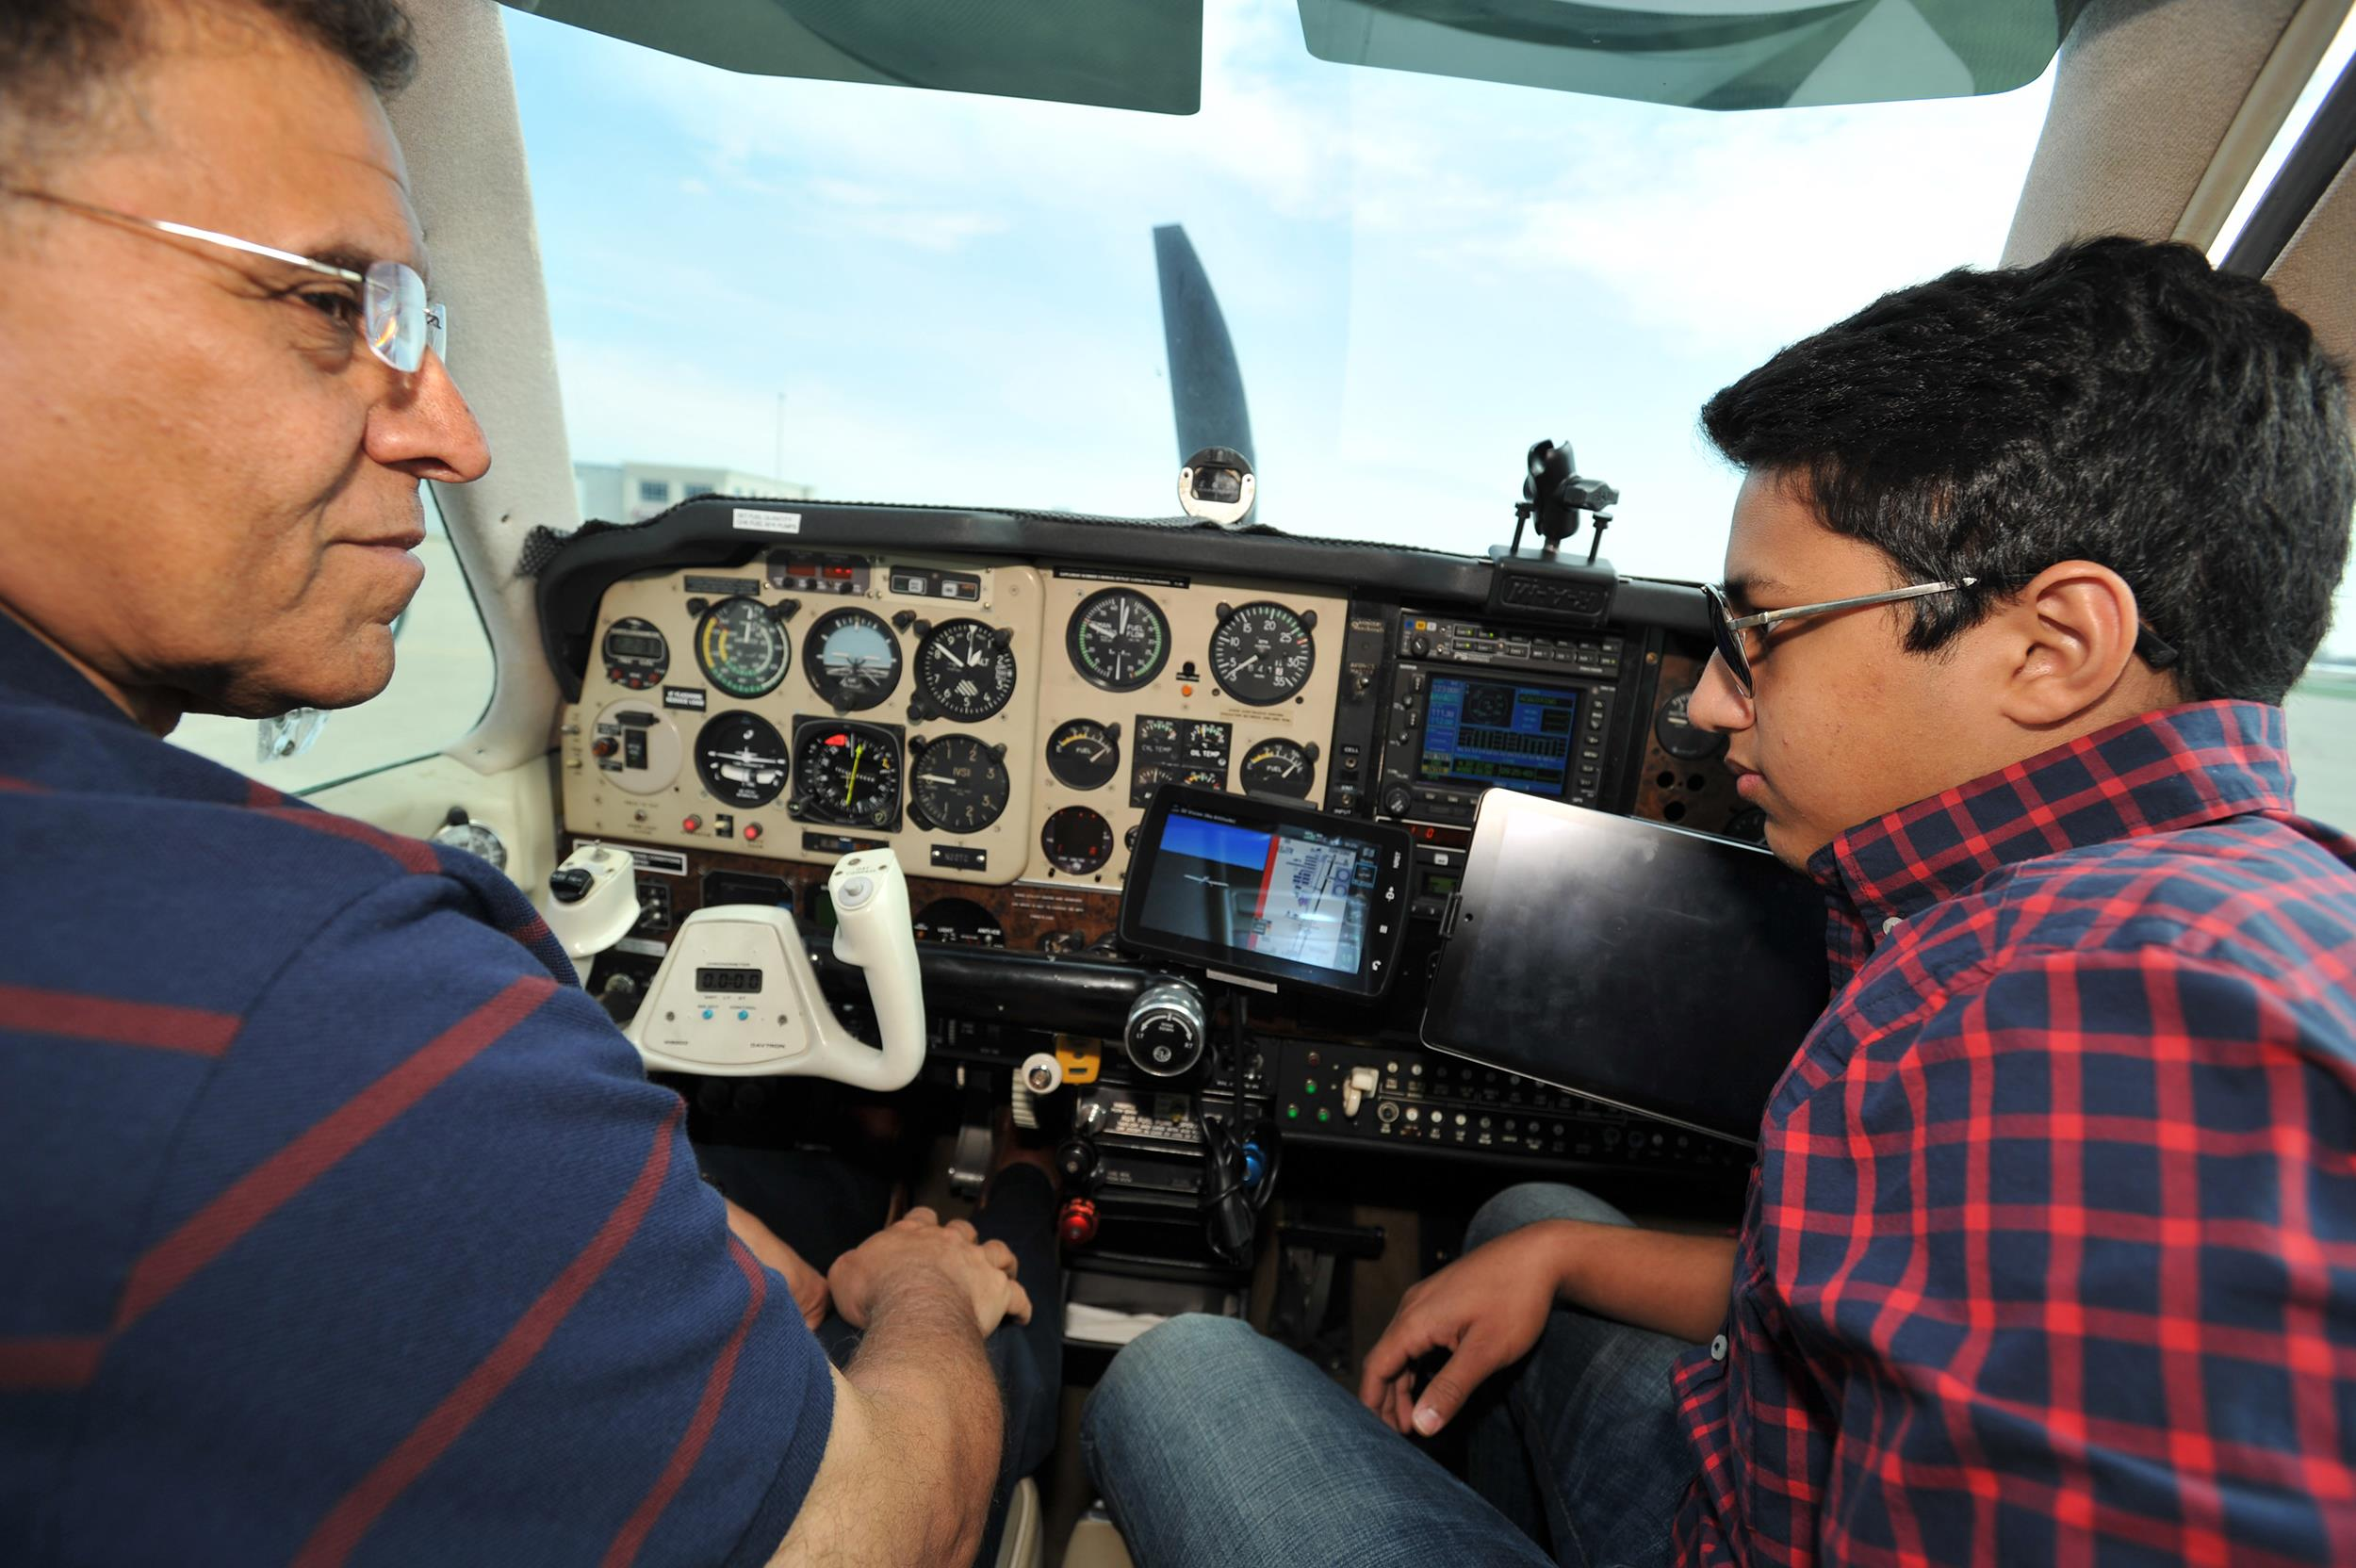 Image: Babar Suleman, left, and son, Haris Suleman, right, sit inside their Beechcraft Bonanza plane